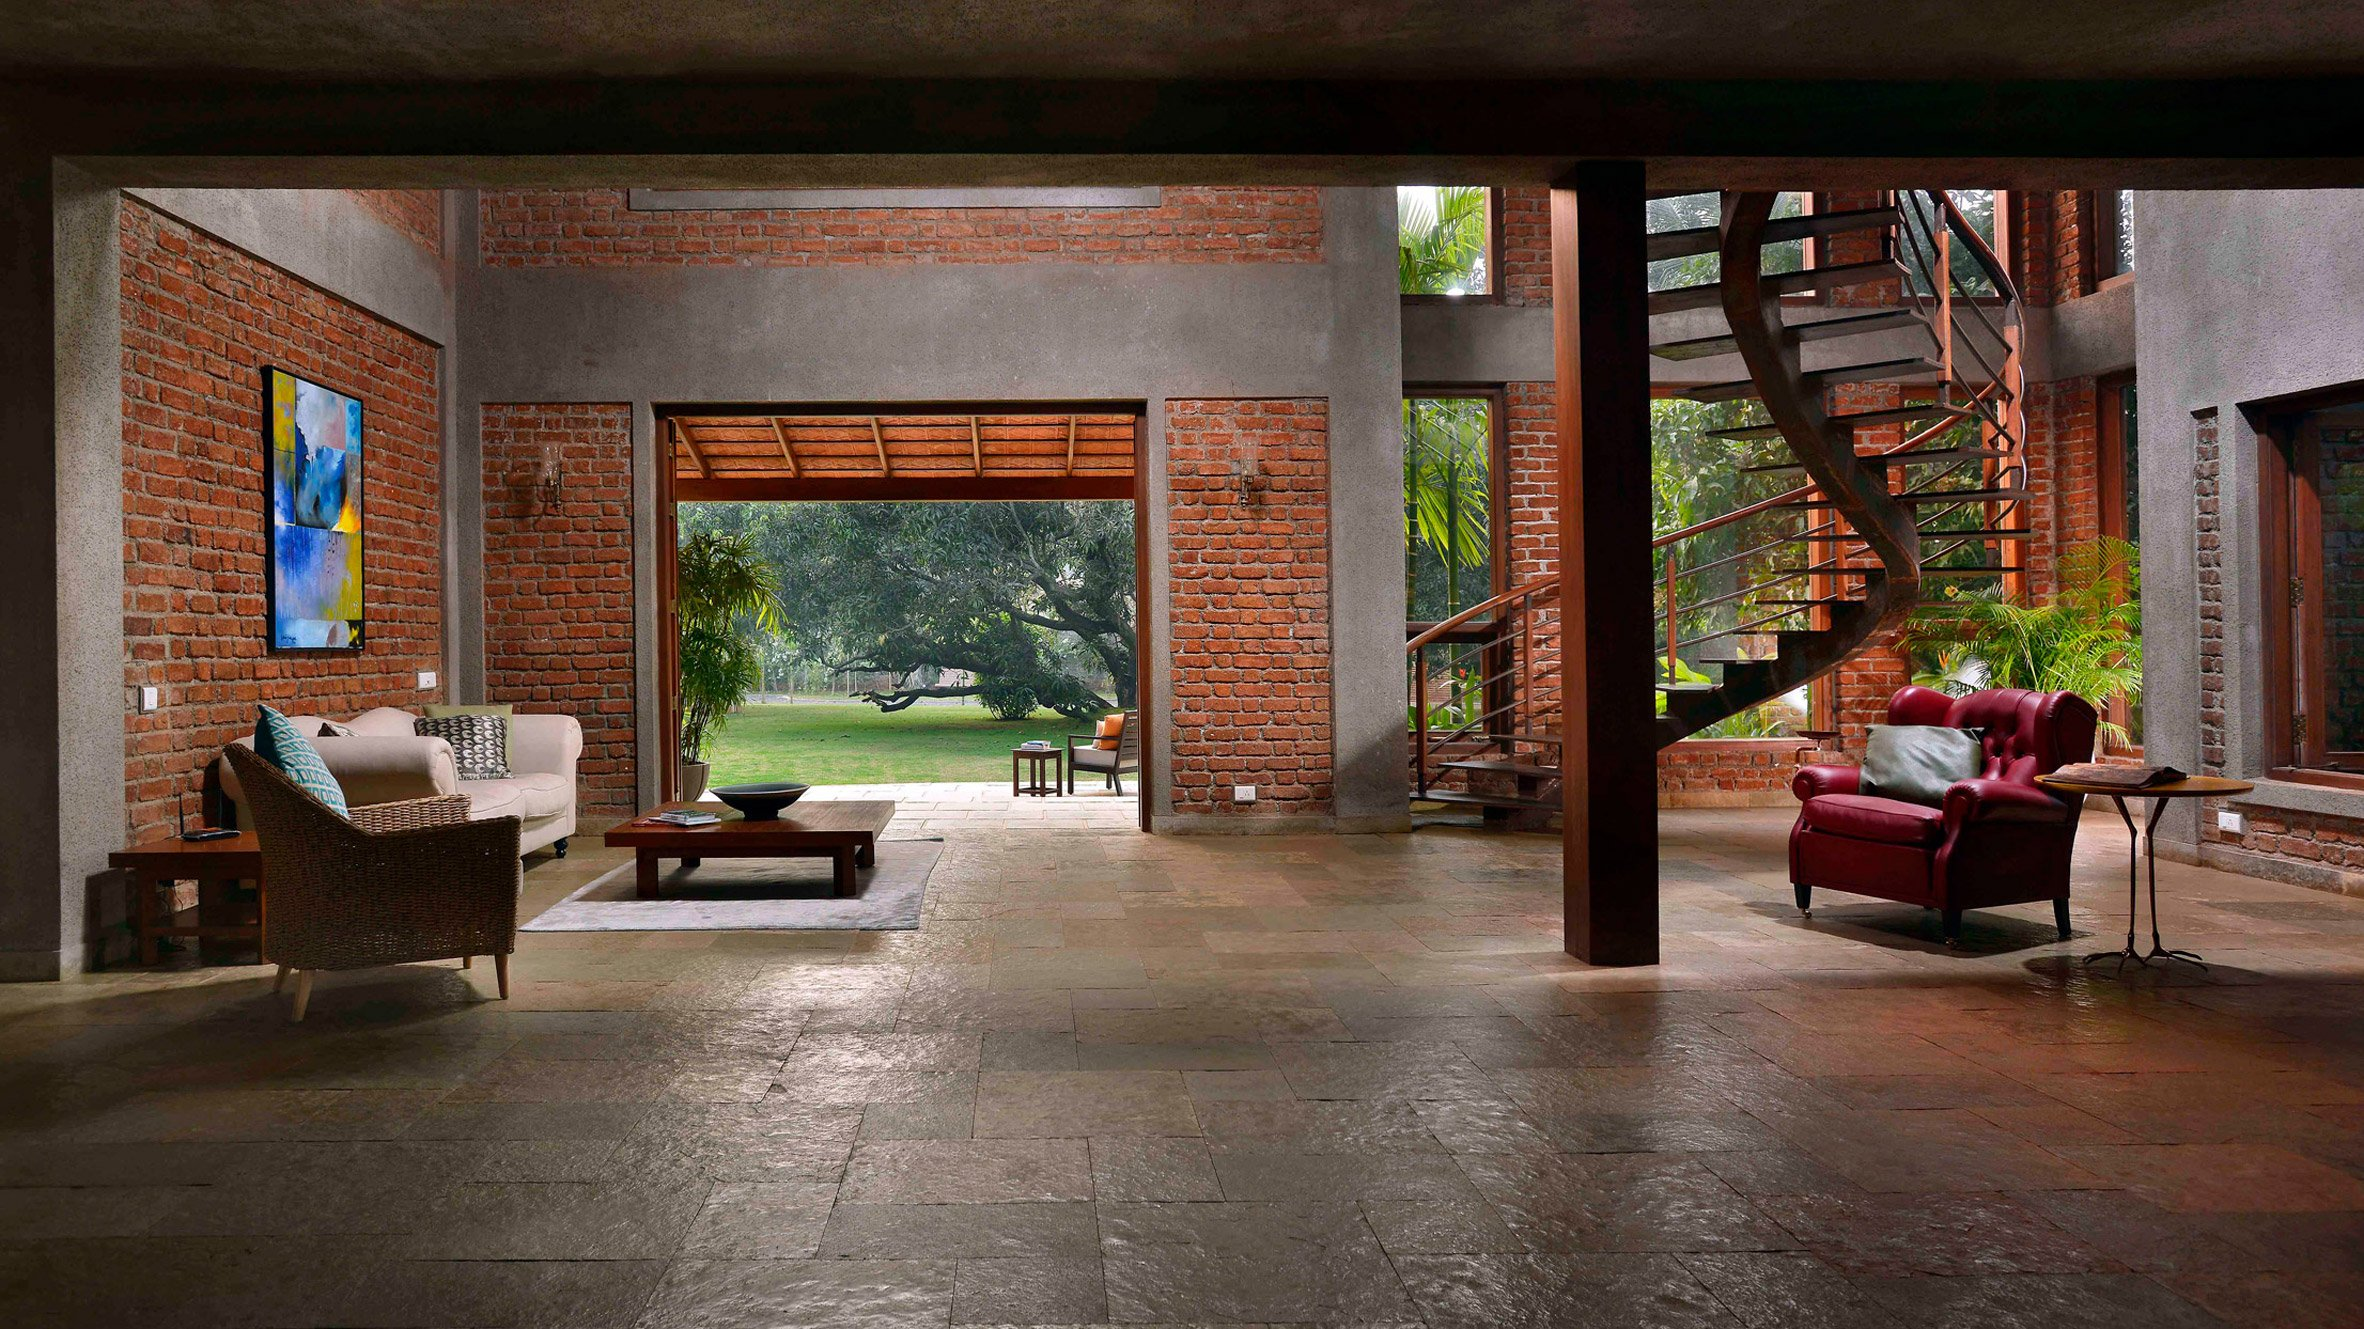 Brick Lined Interiors Open Onto Garden Filled With Fruit Trees At The Mango  House